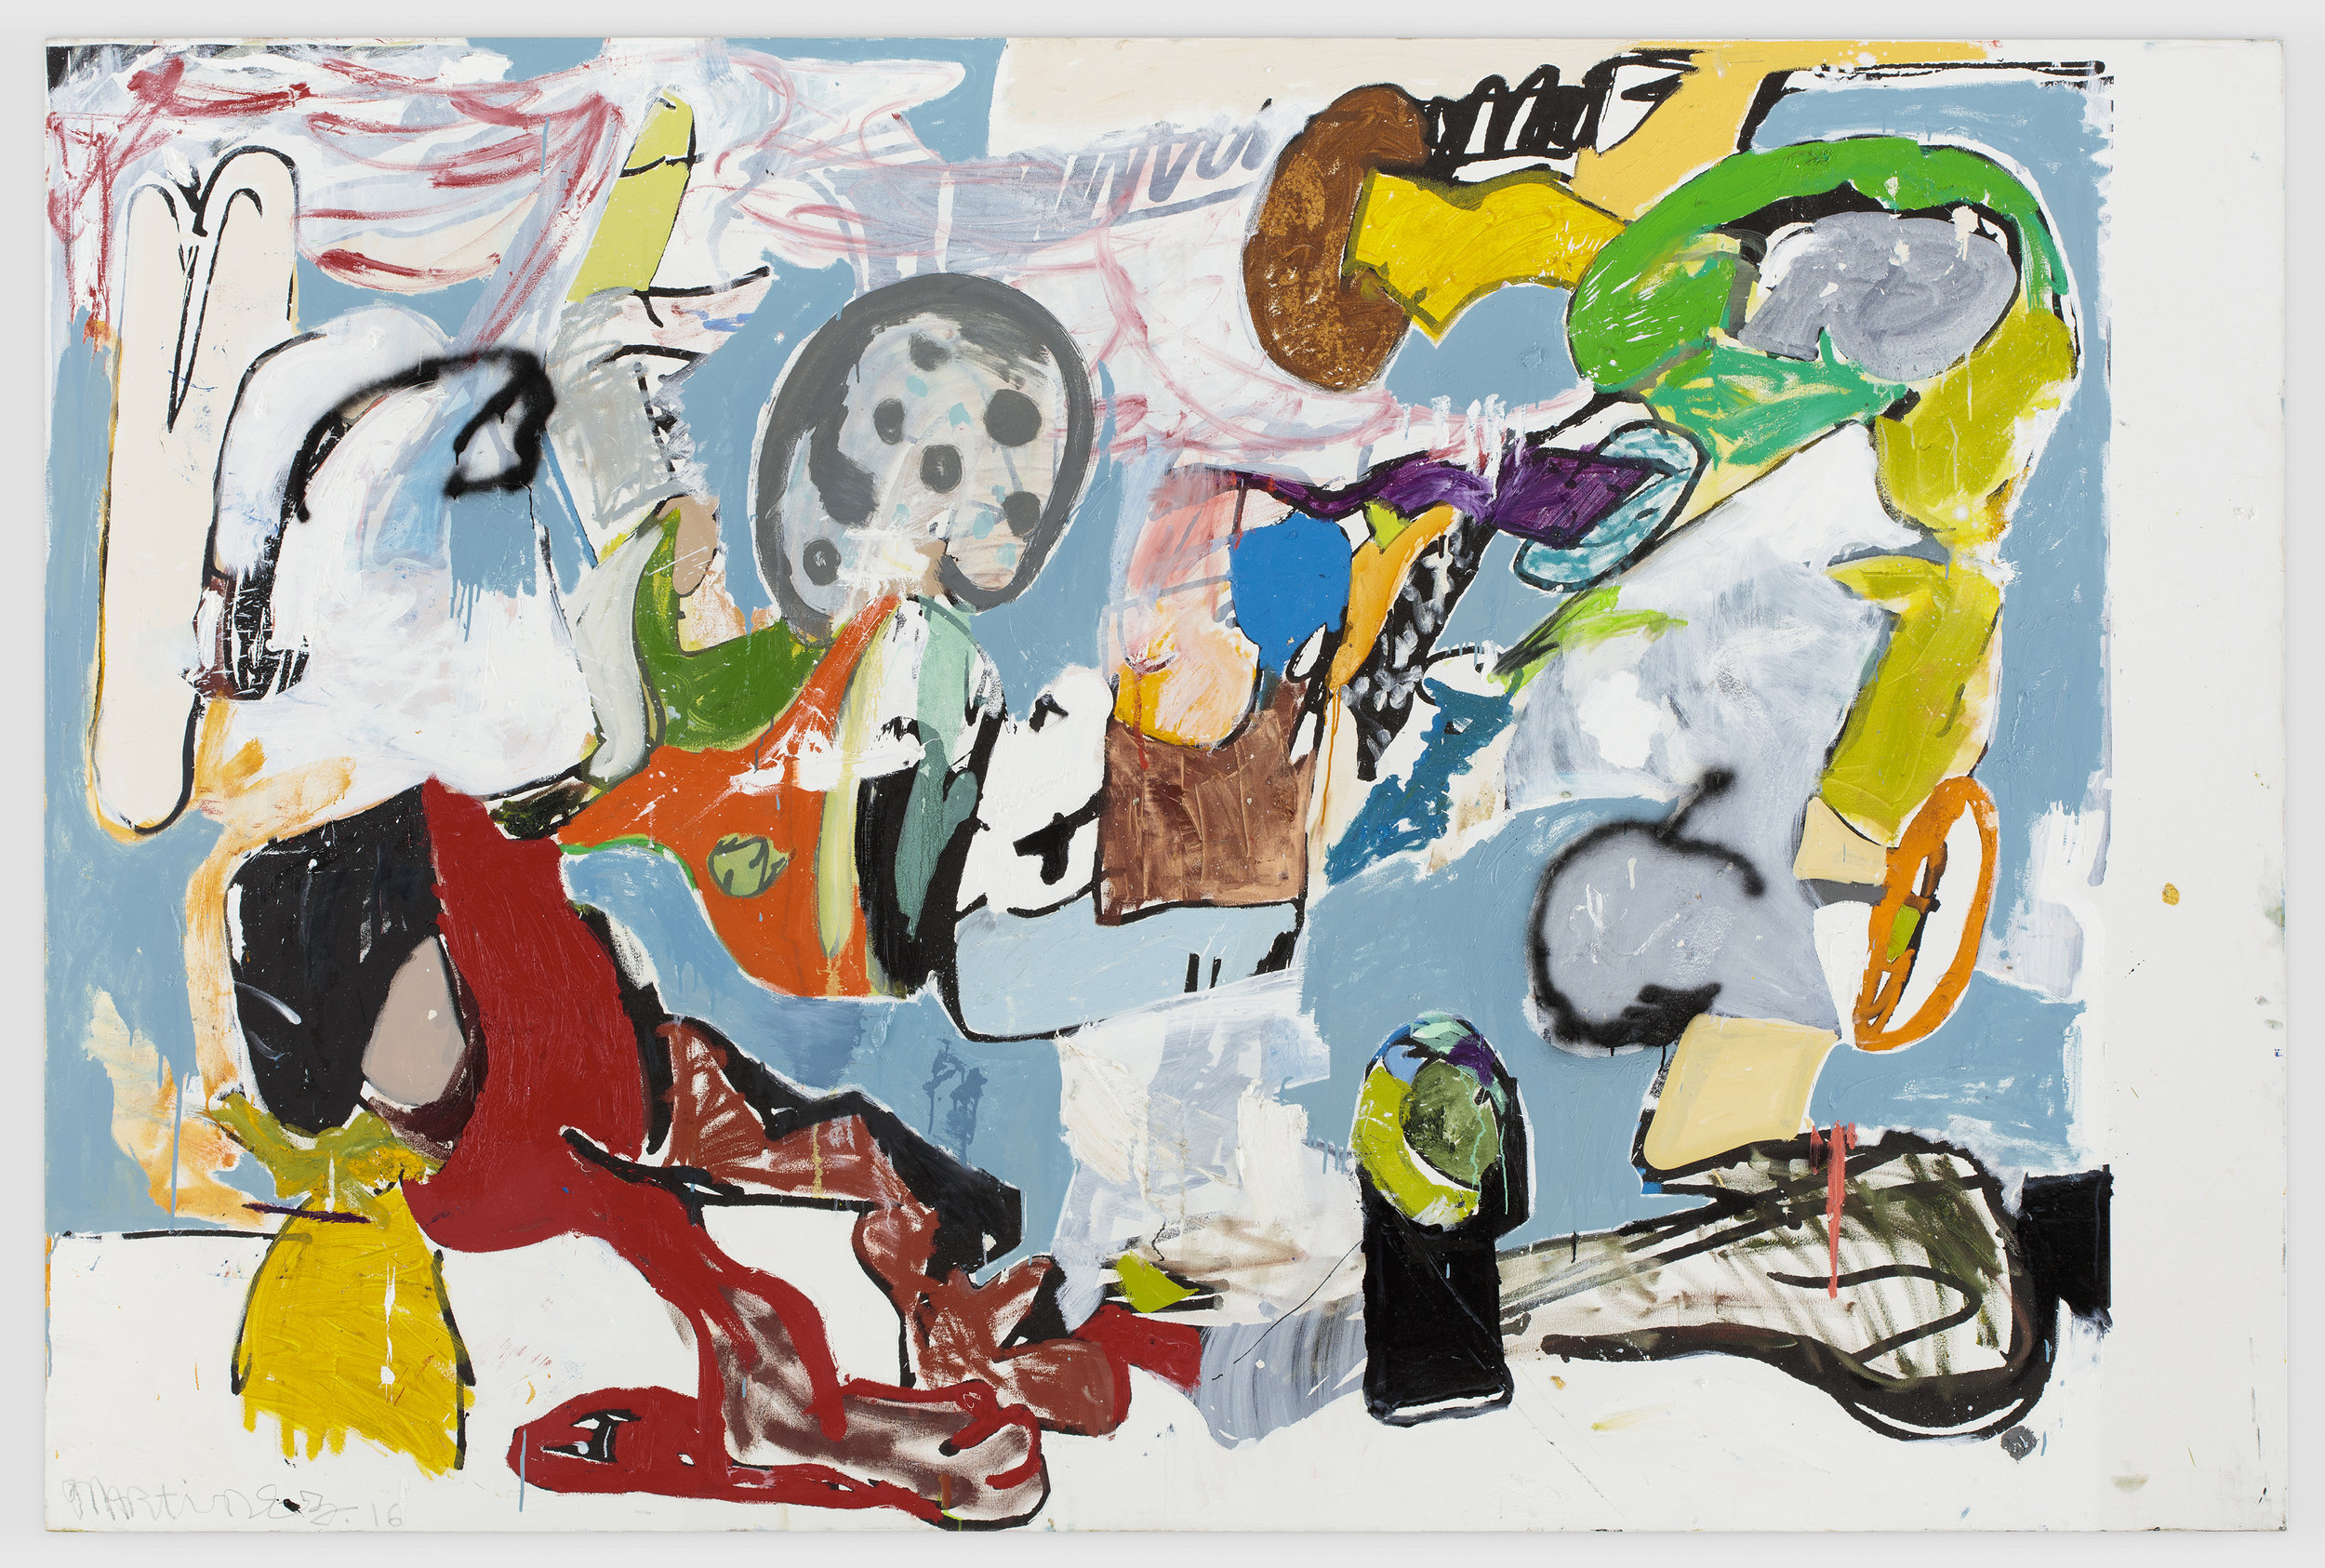 Eddie Martinez, Beach Young, 2016, Silkscreen ink, oil paint, spray paint, enamel and graphite on canvas 182.9 x 274.3 cm© Eddie Martinez. Courtesy Timothy Taylor